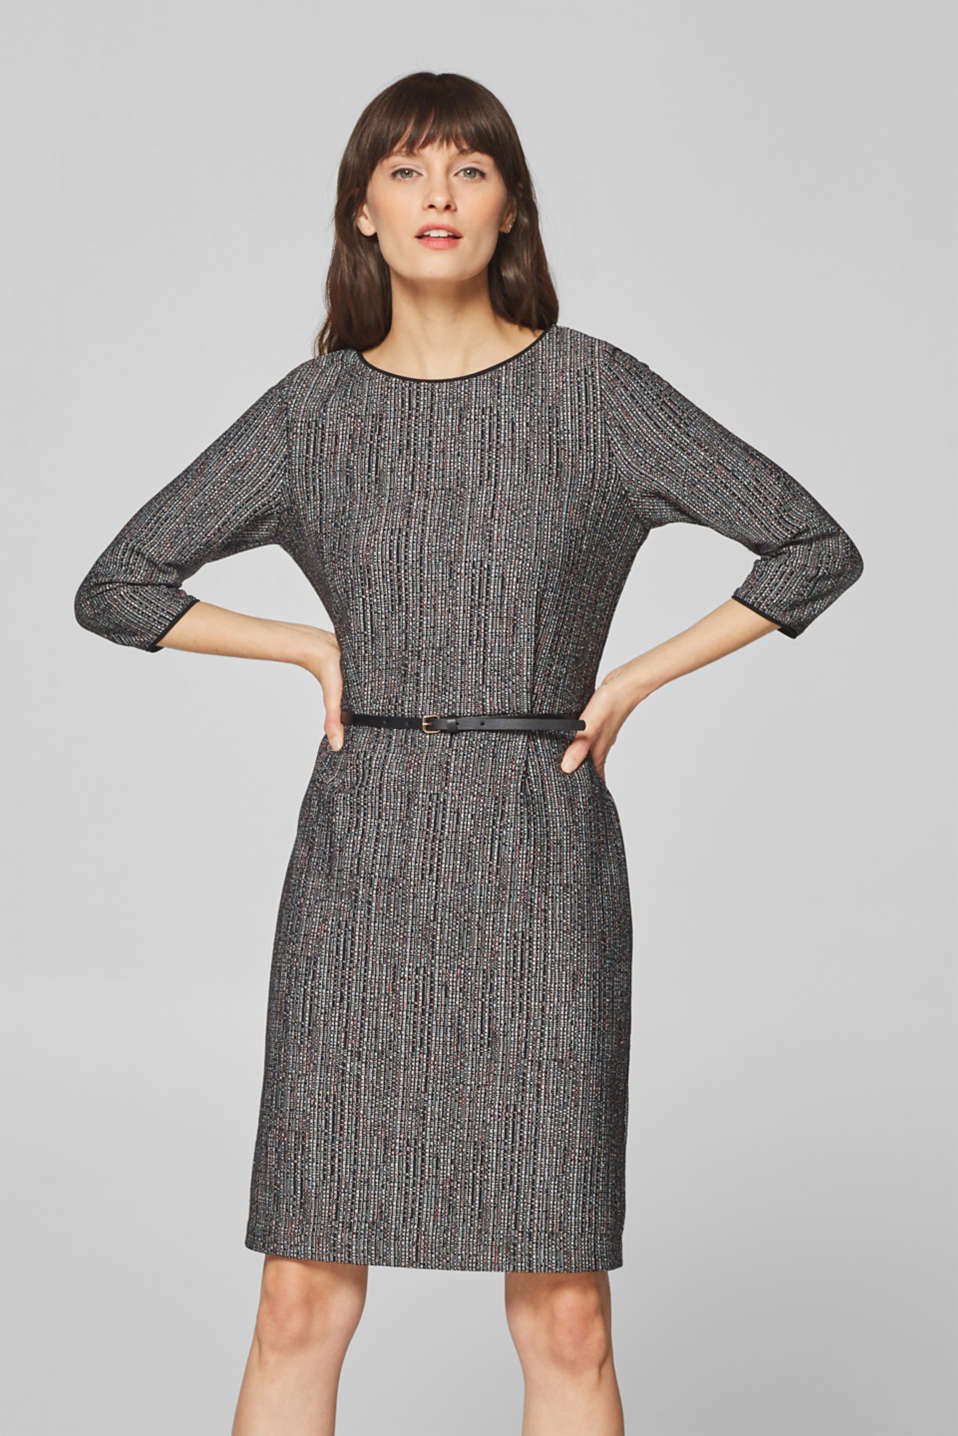 Esprit - Belted sheath dress made of multi-coloured jersey